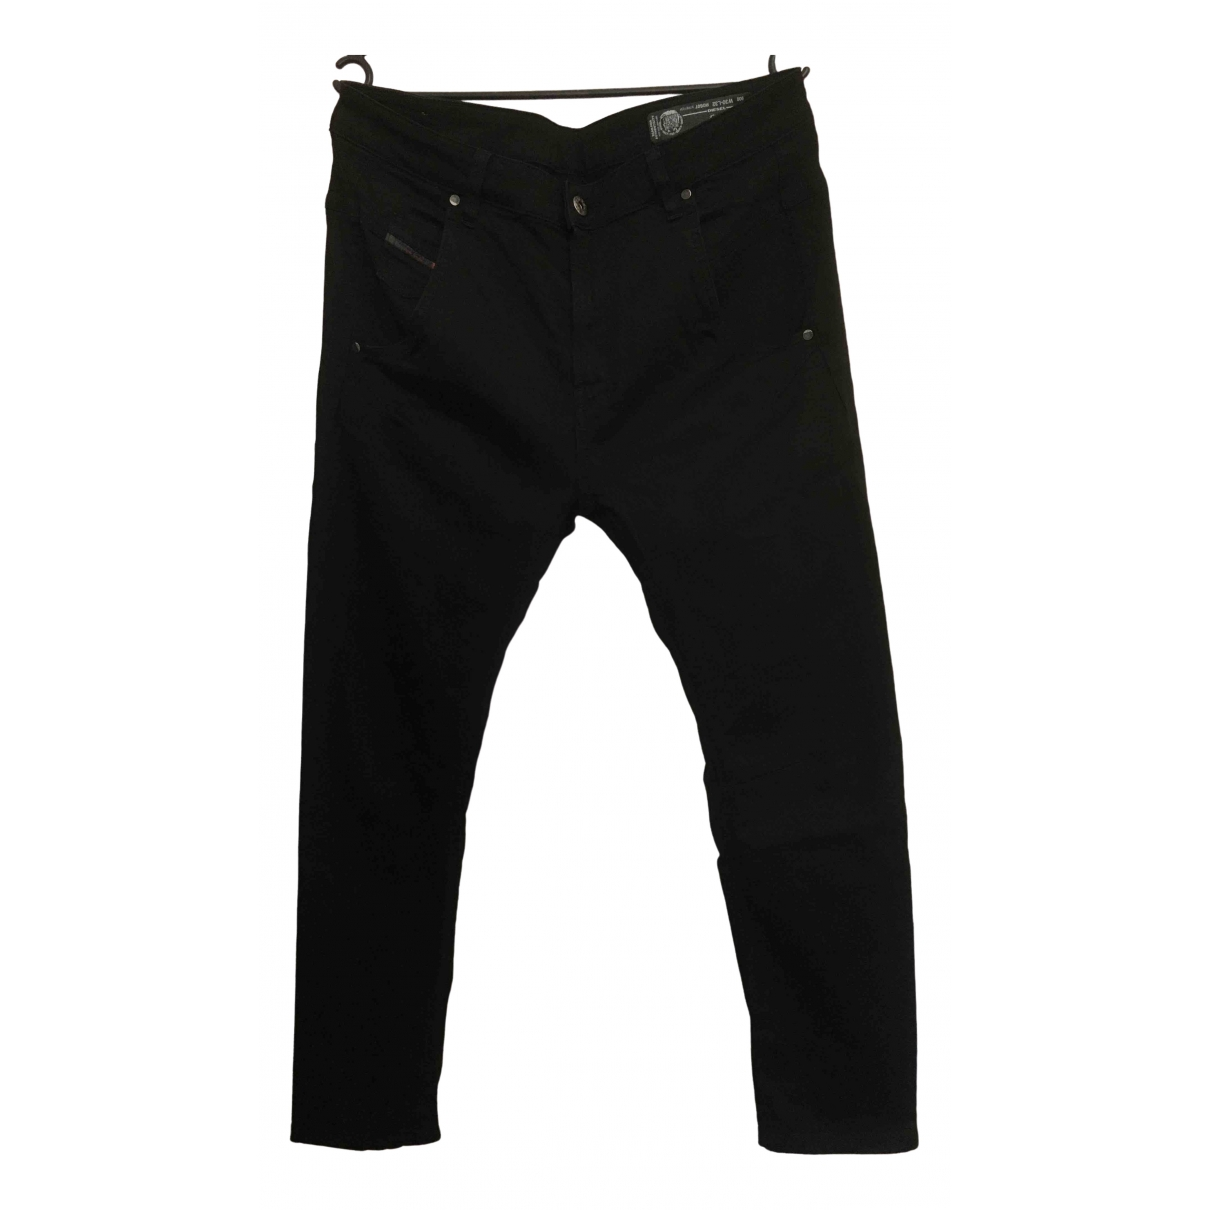 Diesel \N Black Cotton Trousers for Women 42 FR